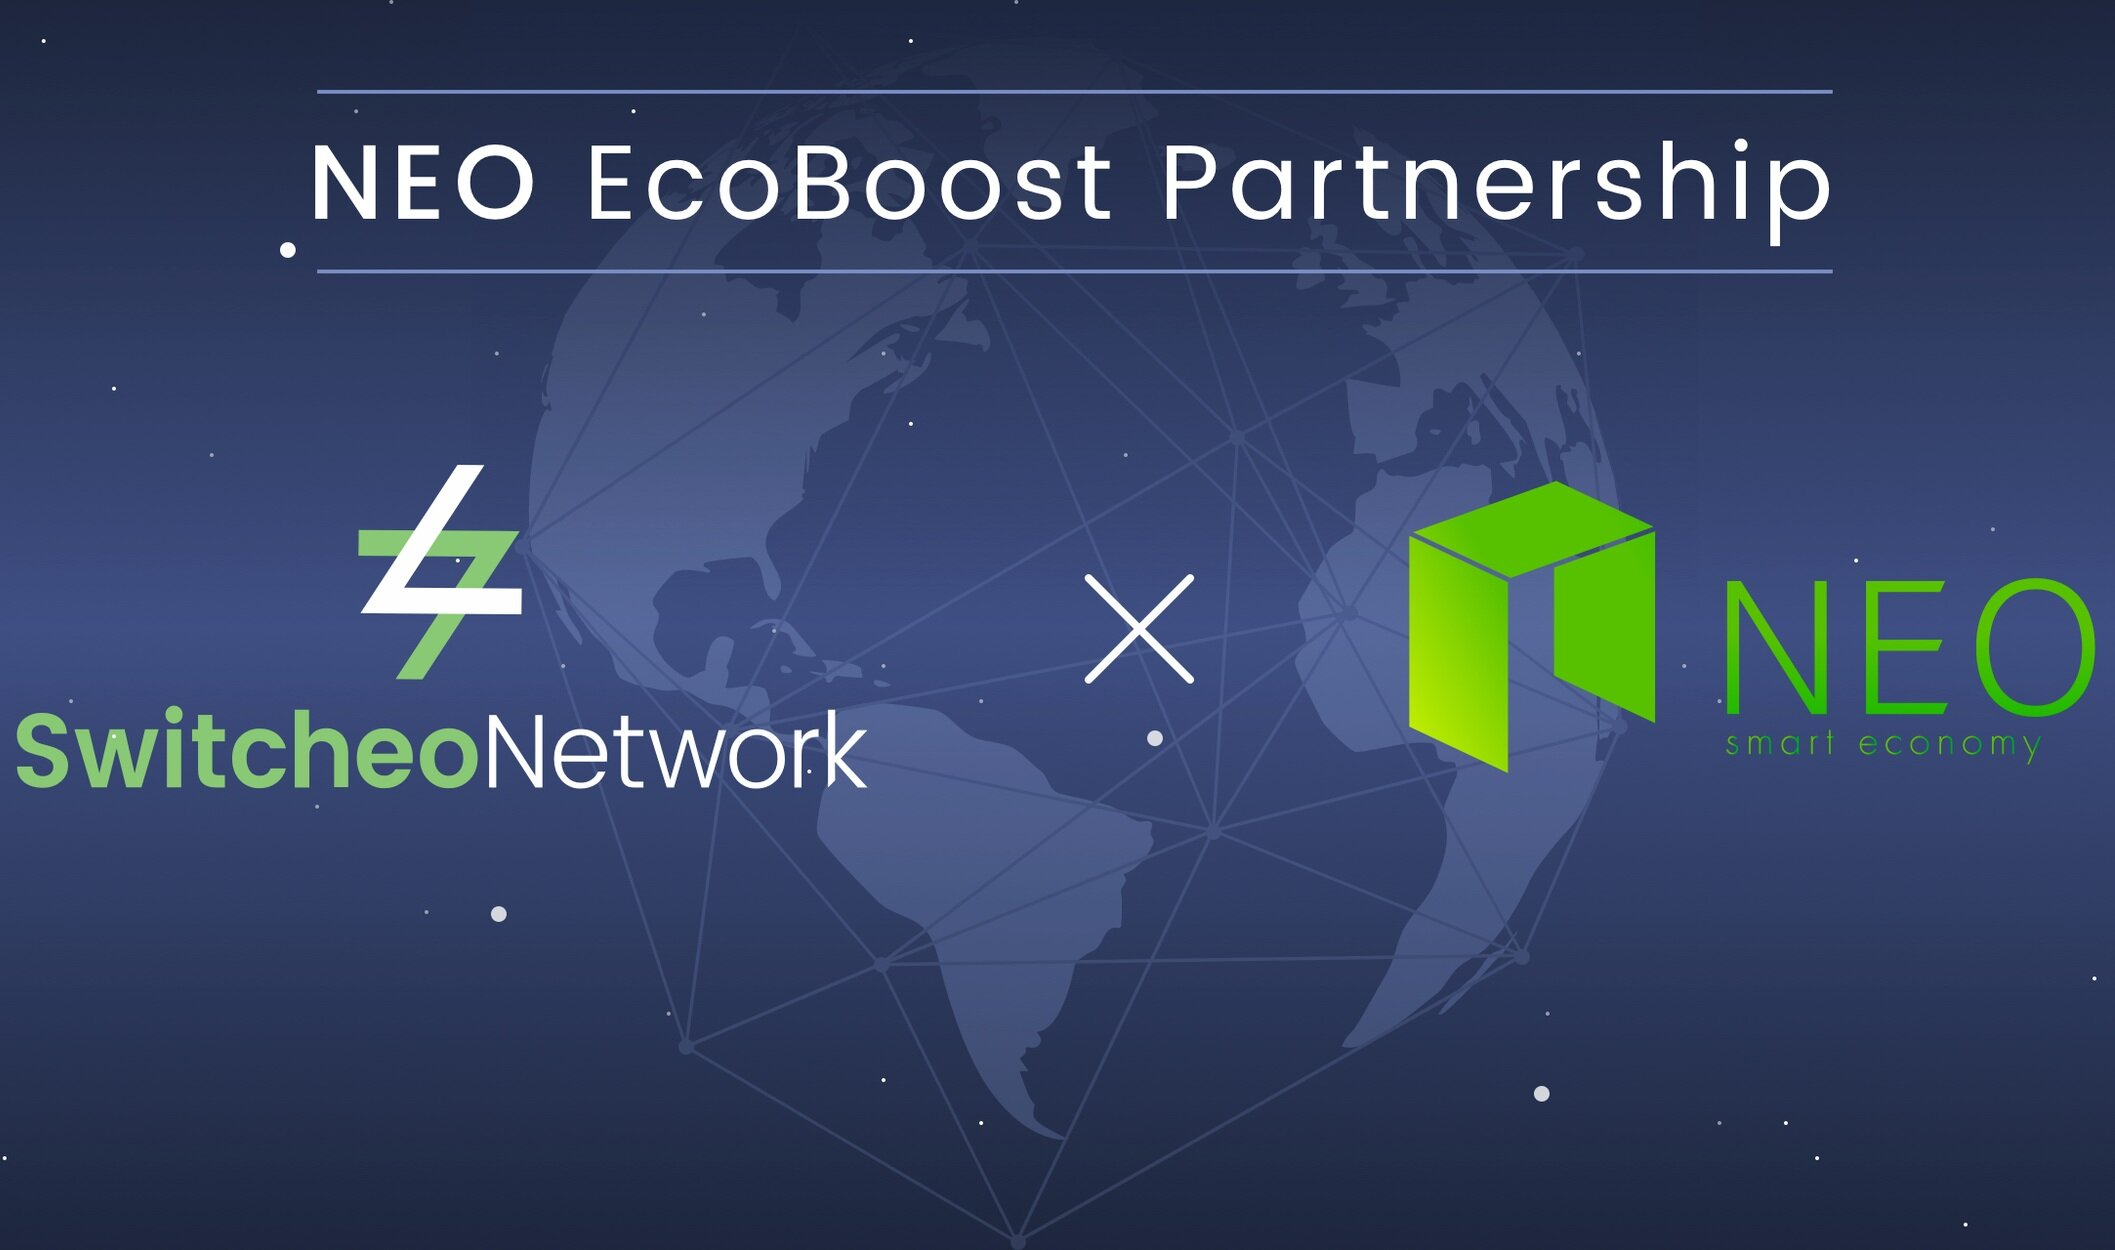 Neo ecoboost - On August 1st 2019, Switcheo announced they are among the first members to be partnering with NEO under the NEO EcoBoost program. As one of the exchange partners, the aim is to support token projects built on NEO to further contribute to the sustainability of the NEO ecosystem by having priority in their listing processes.